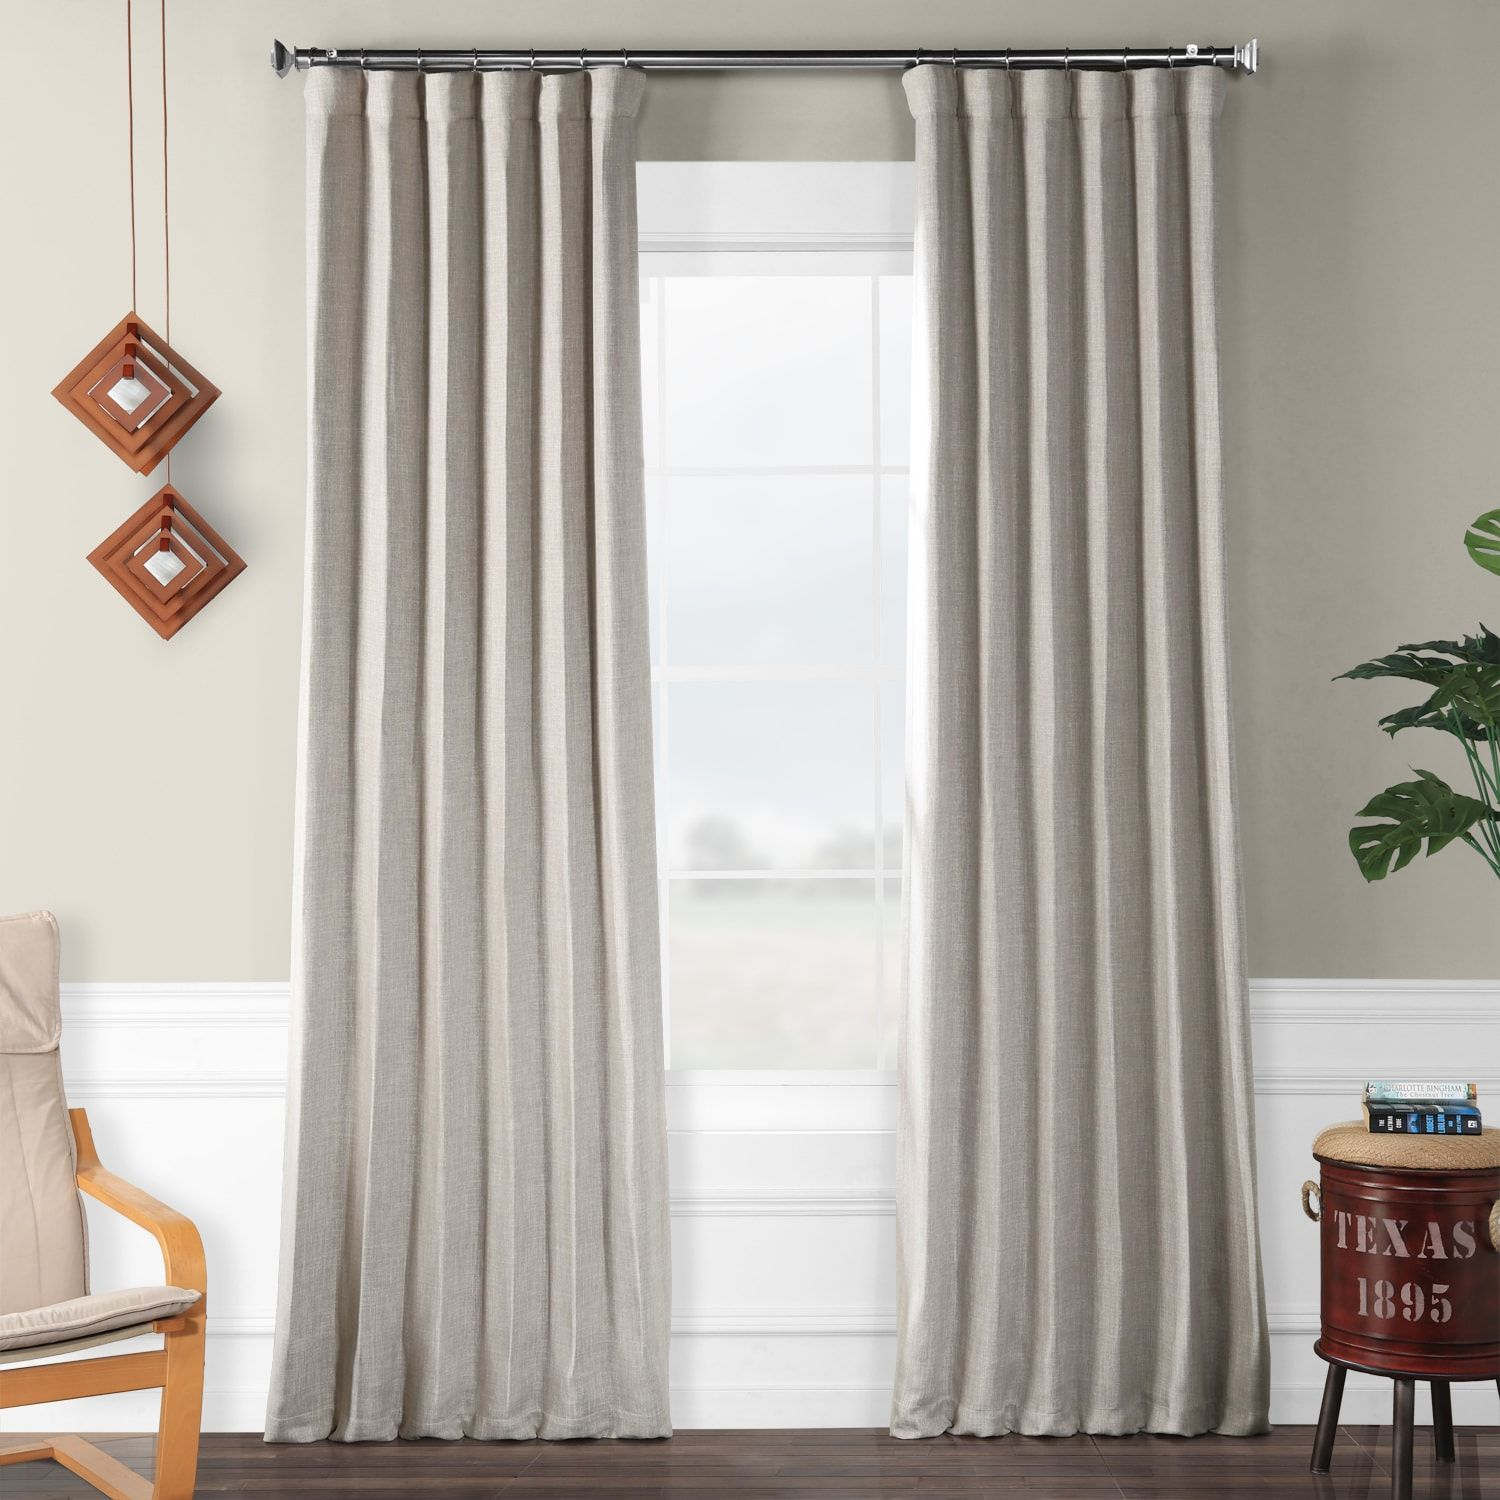 Clay Faux Linen Blackout Room Darkening Curtain In 2020 Panel